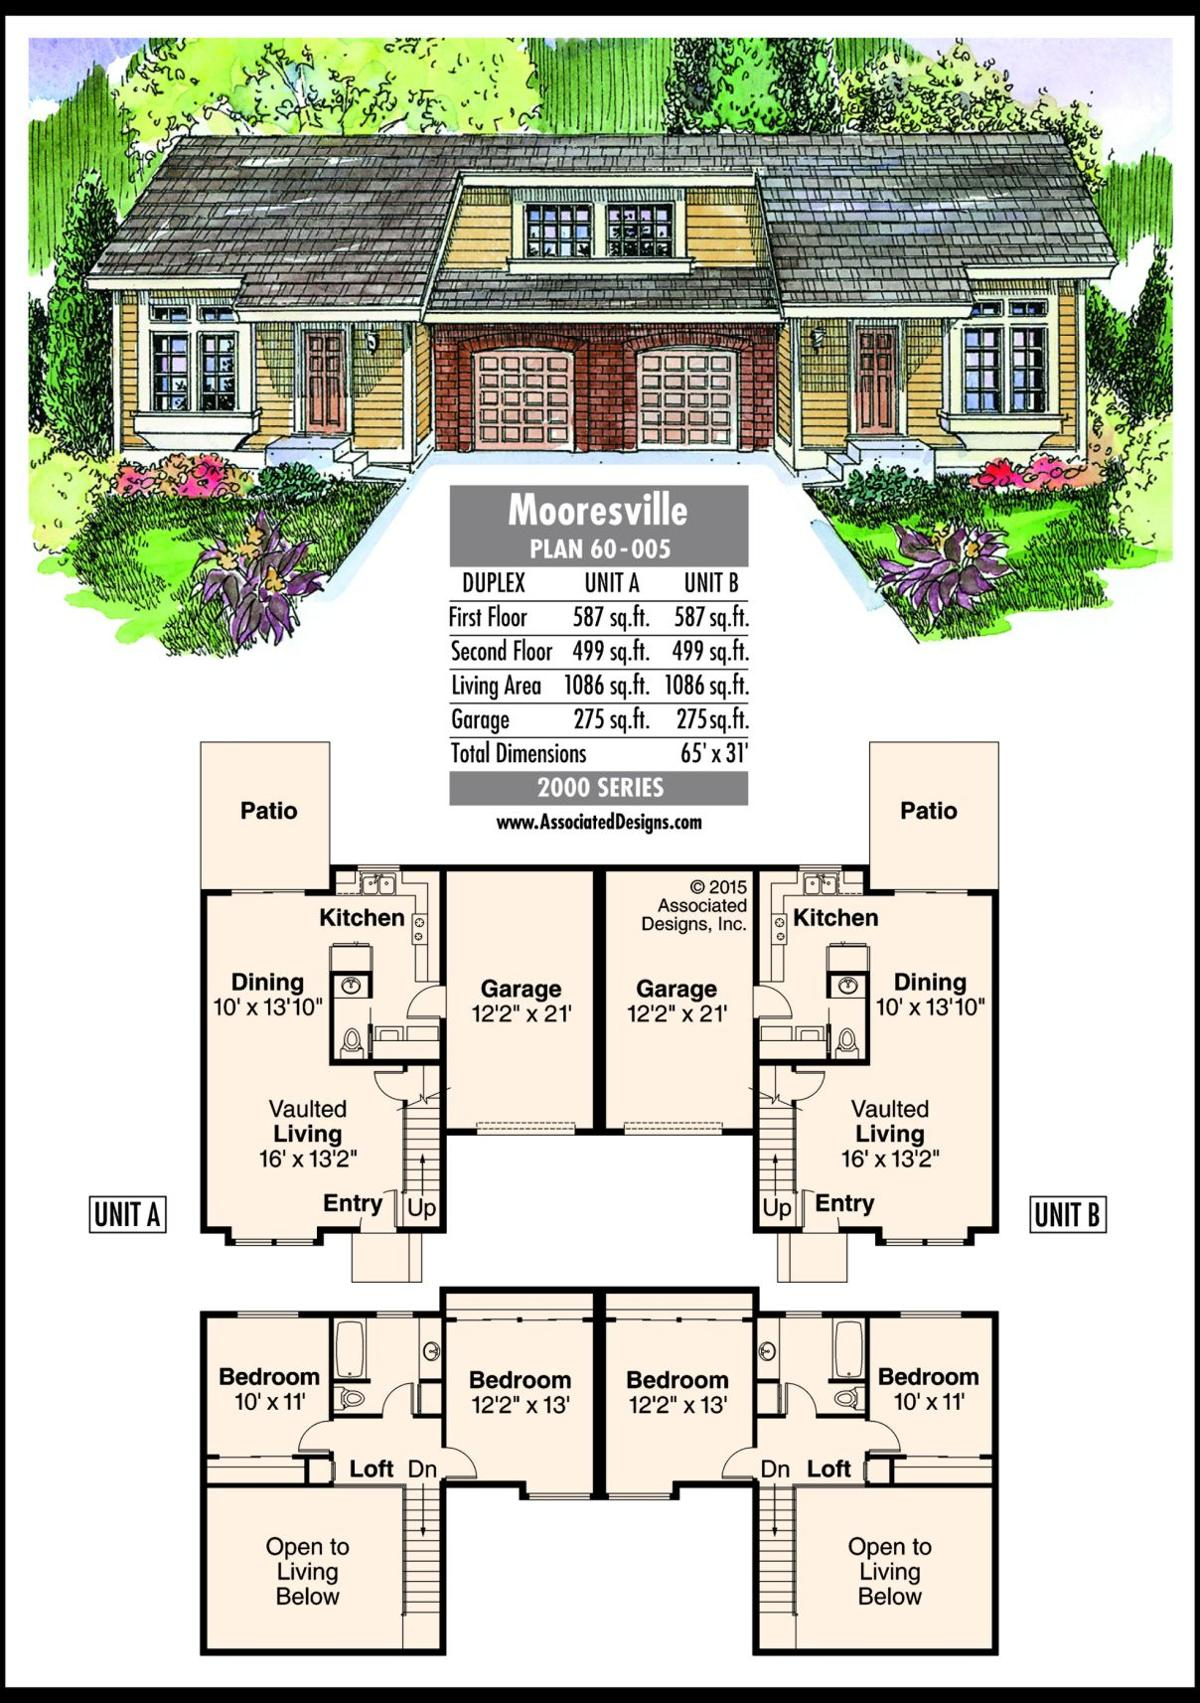 This week's house plan Mooresville 60-005